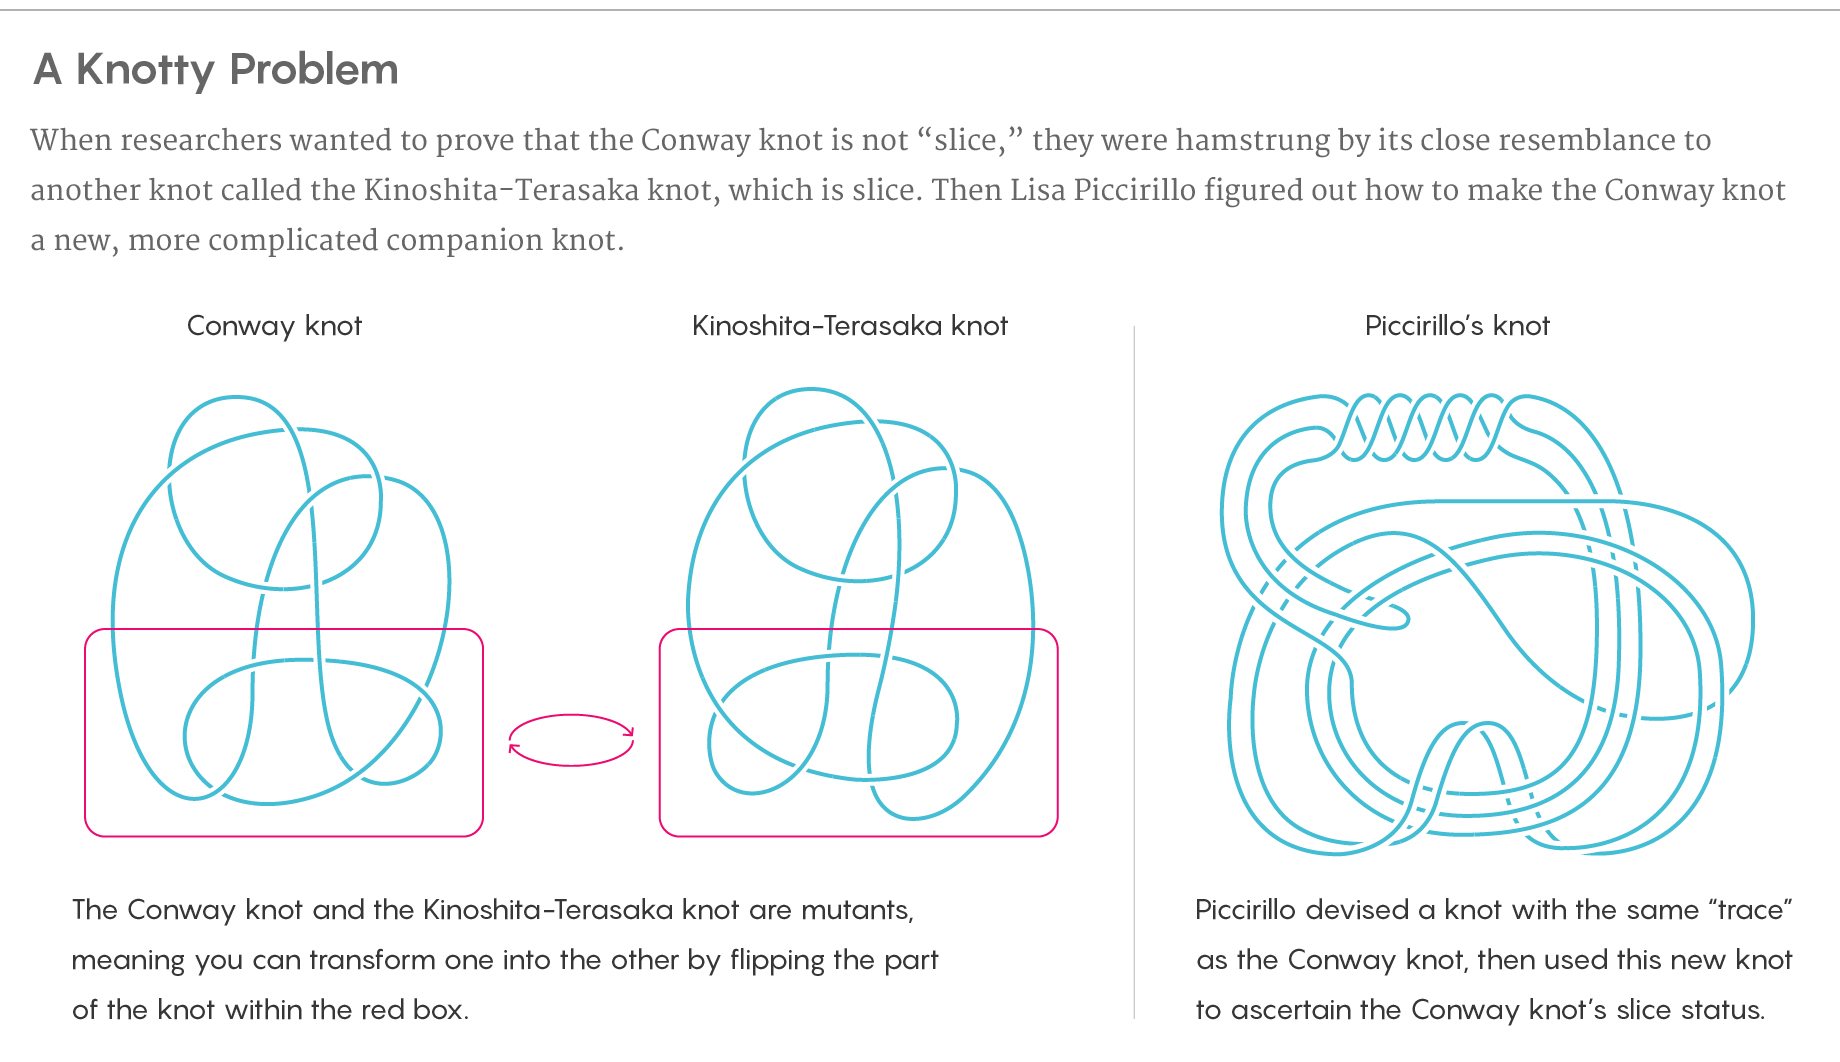 An informational graphic showing the Conway knot, the related Kinoshita-Terasaka knot and a complicated companion knot Lisa Piccirillo devised to help determine the Conway knot's slice status.